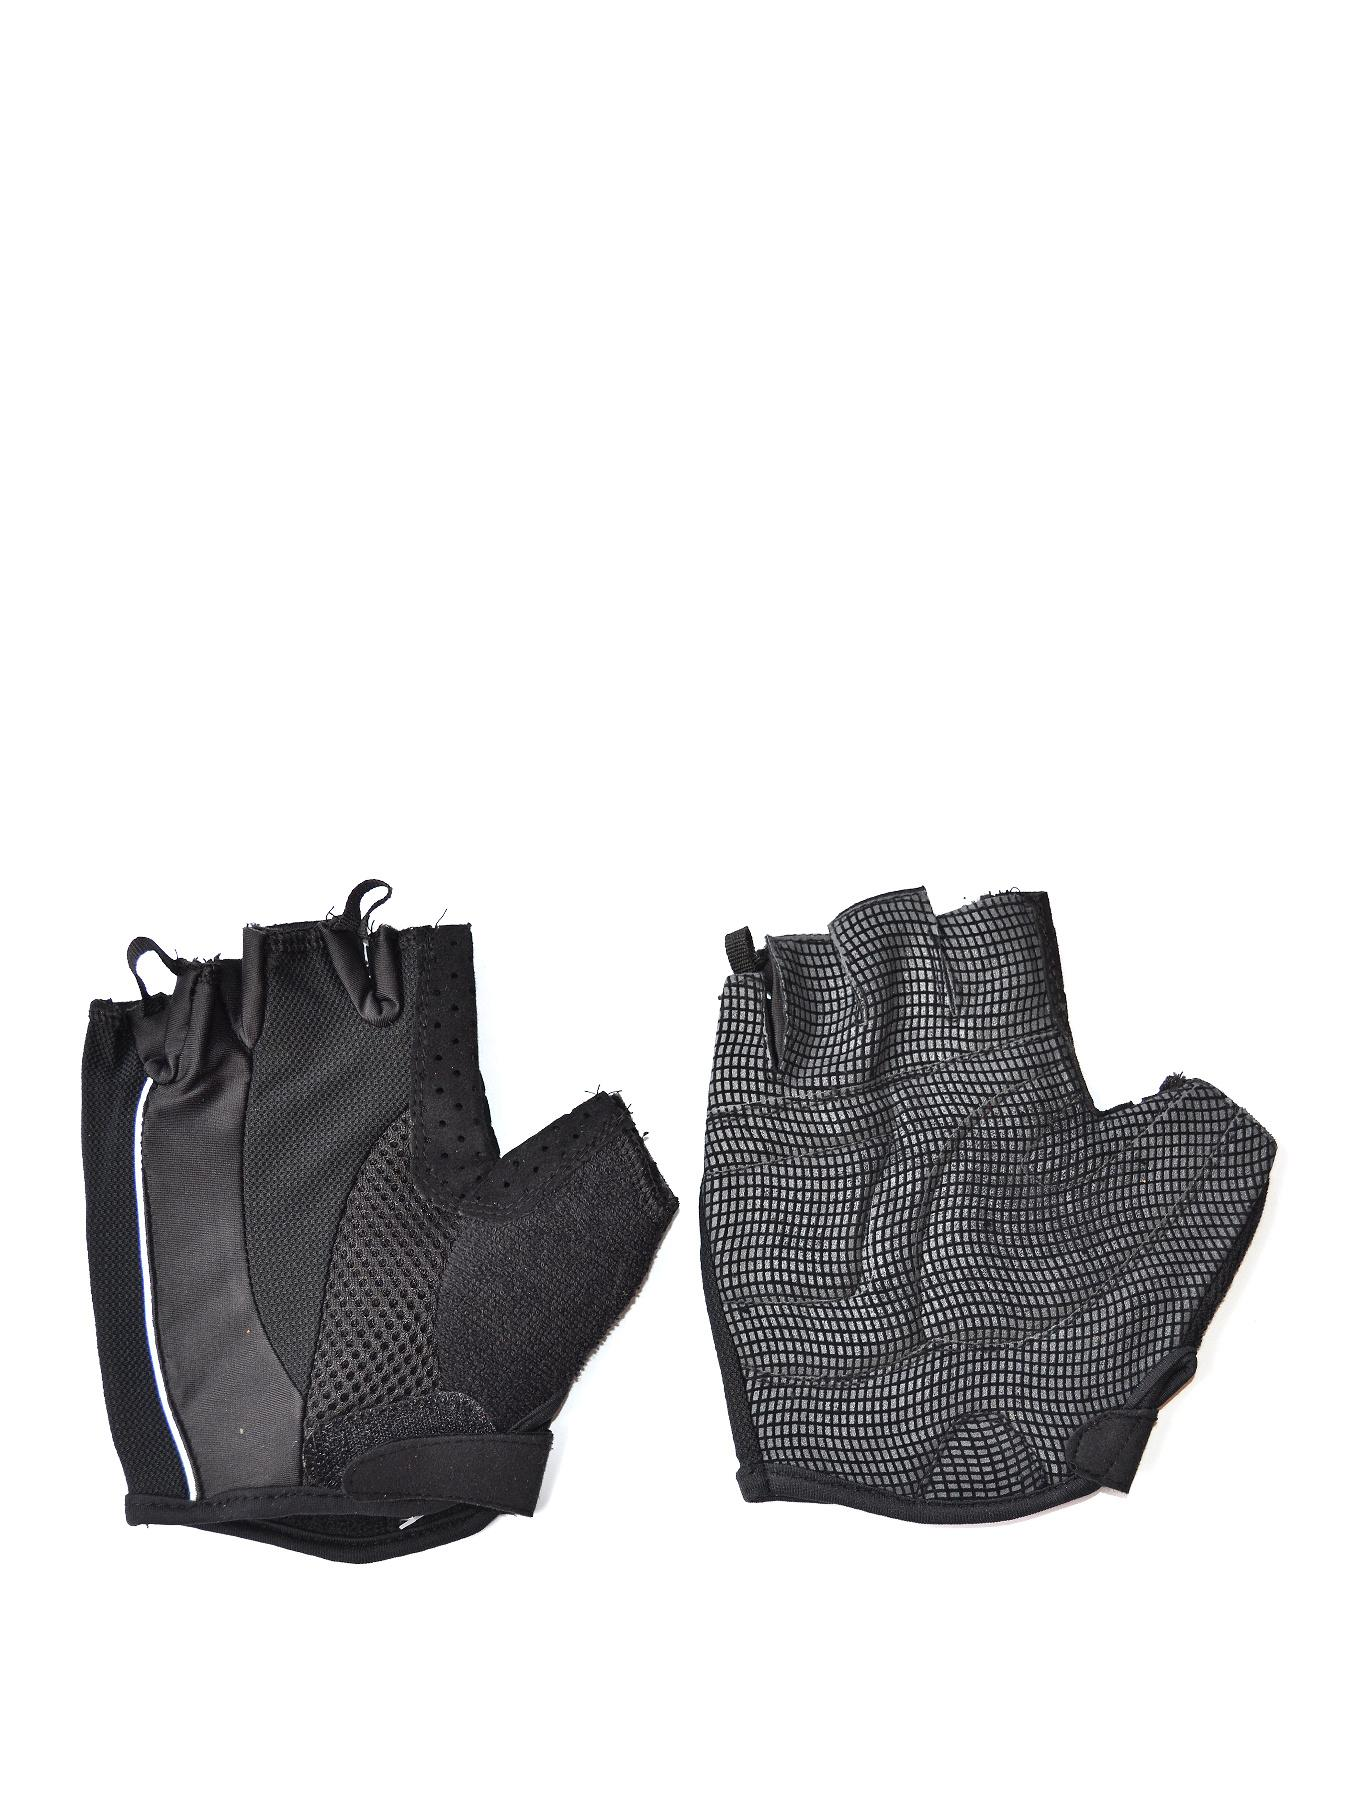 Bike Track Mitts - Black, Black